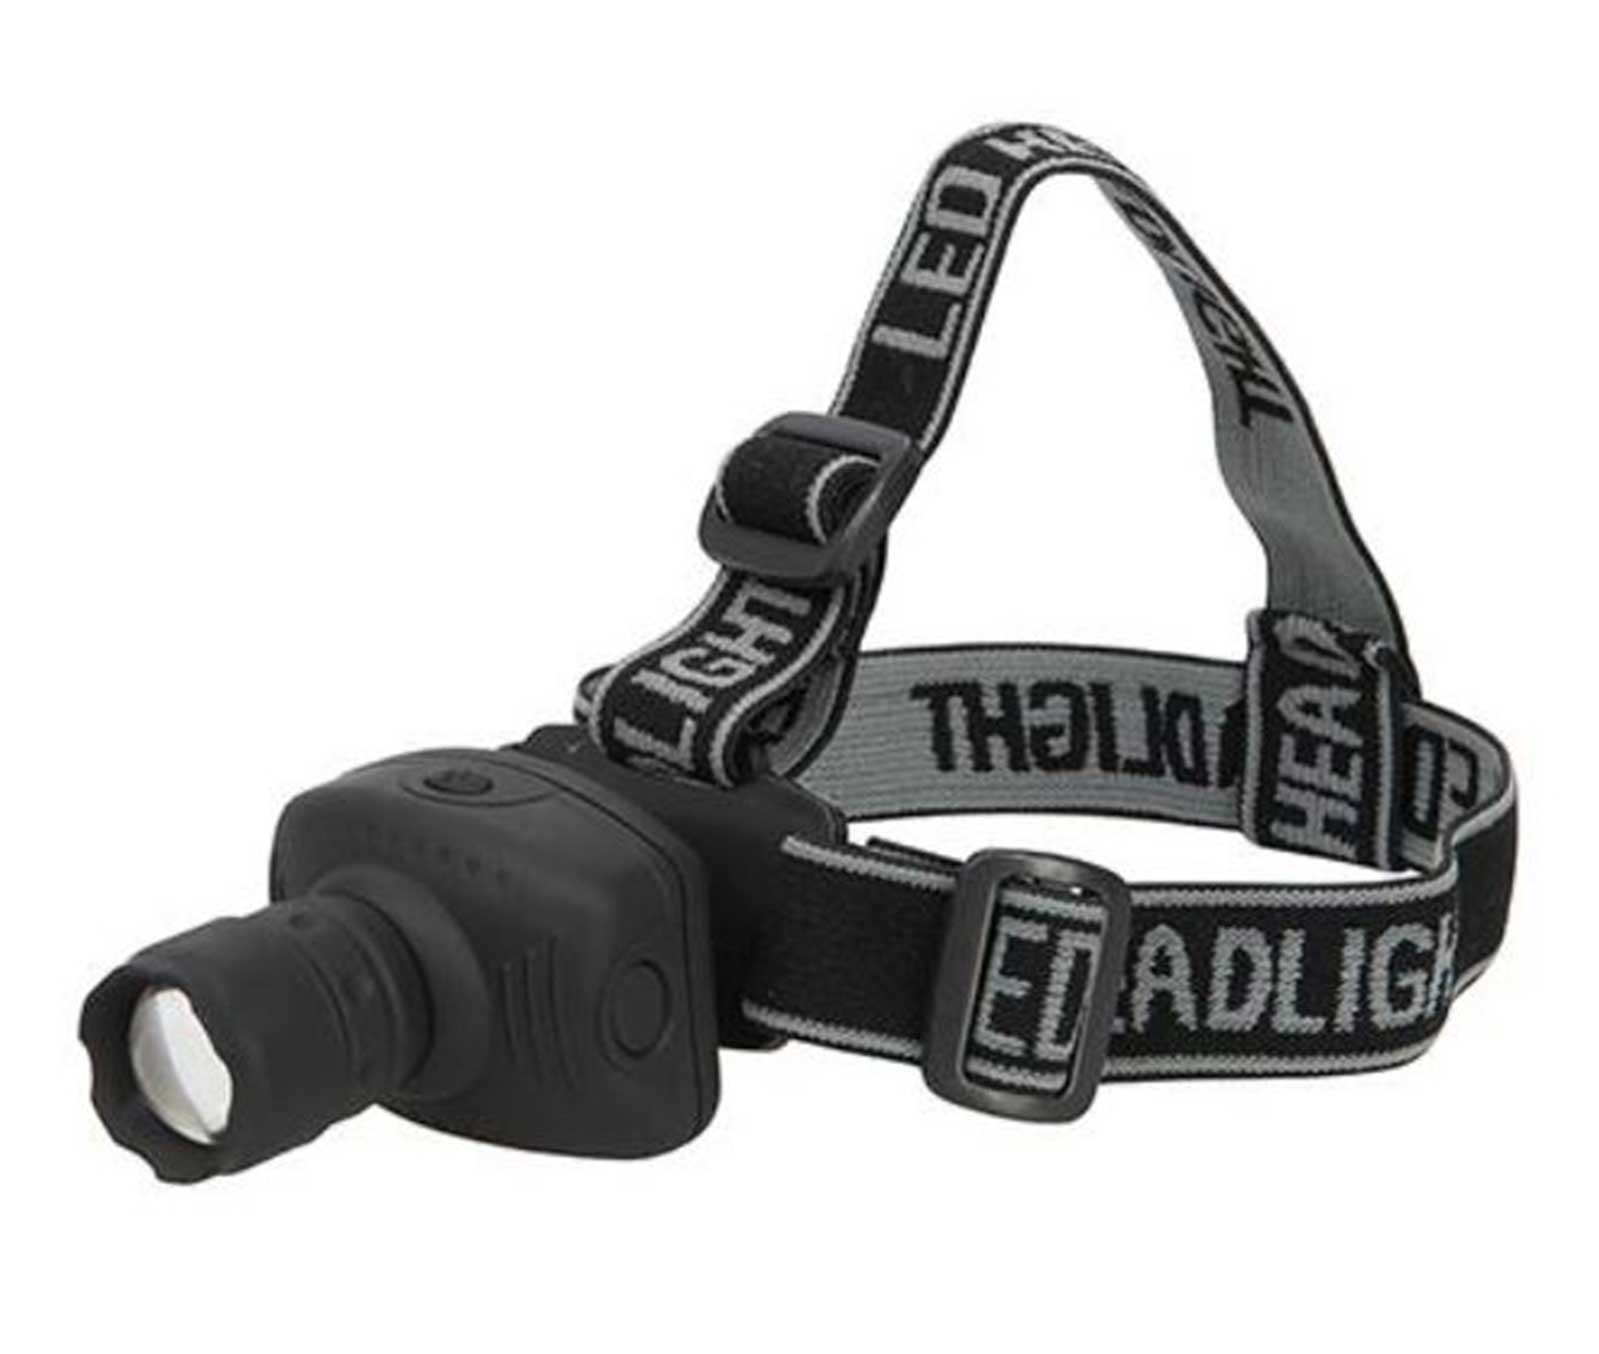 LED HEAD TORCH - Rustbuster